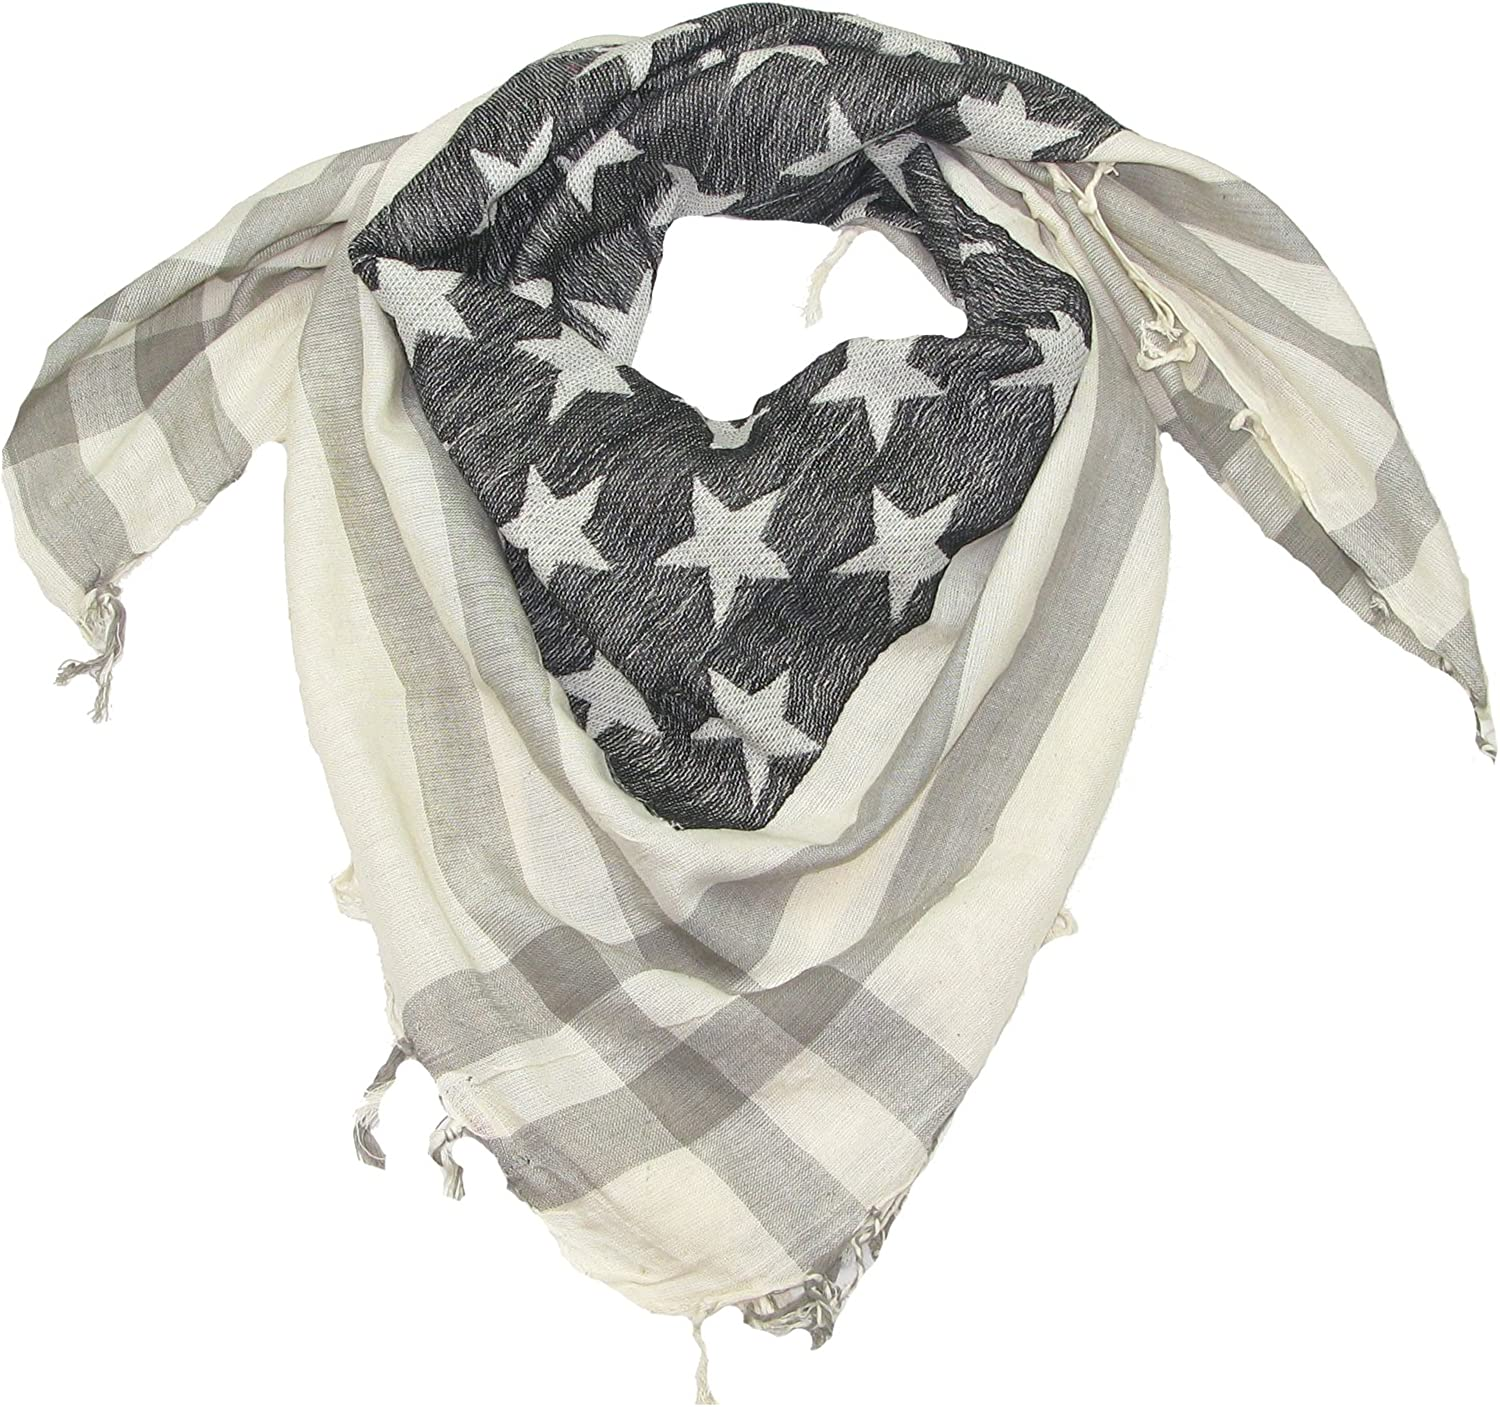 LOVARZI Shemagh Sale Cotton Arab Keffiyeh Military Excellent Tactical Scarf Hea